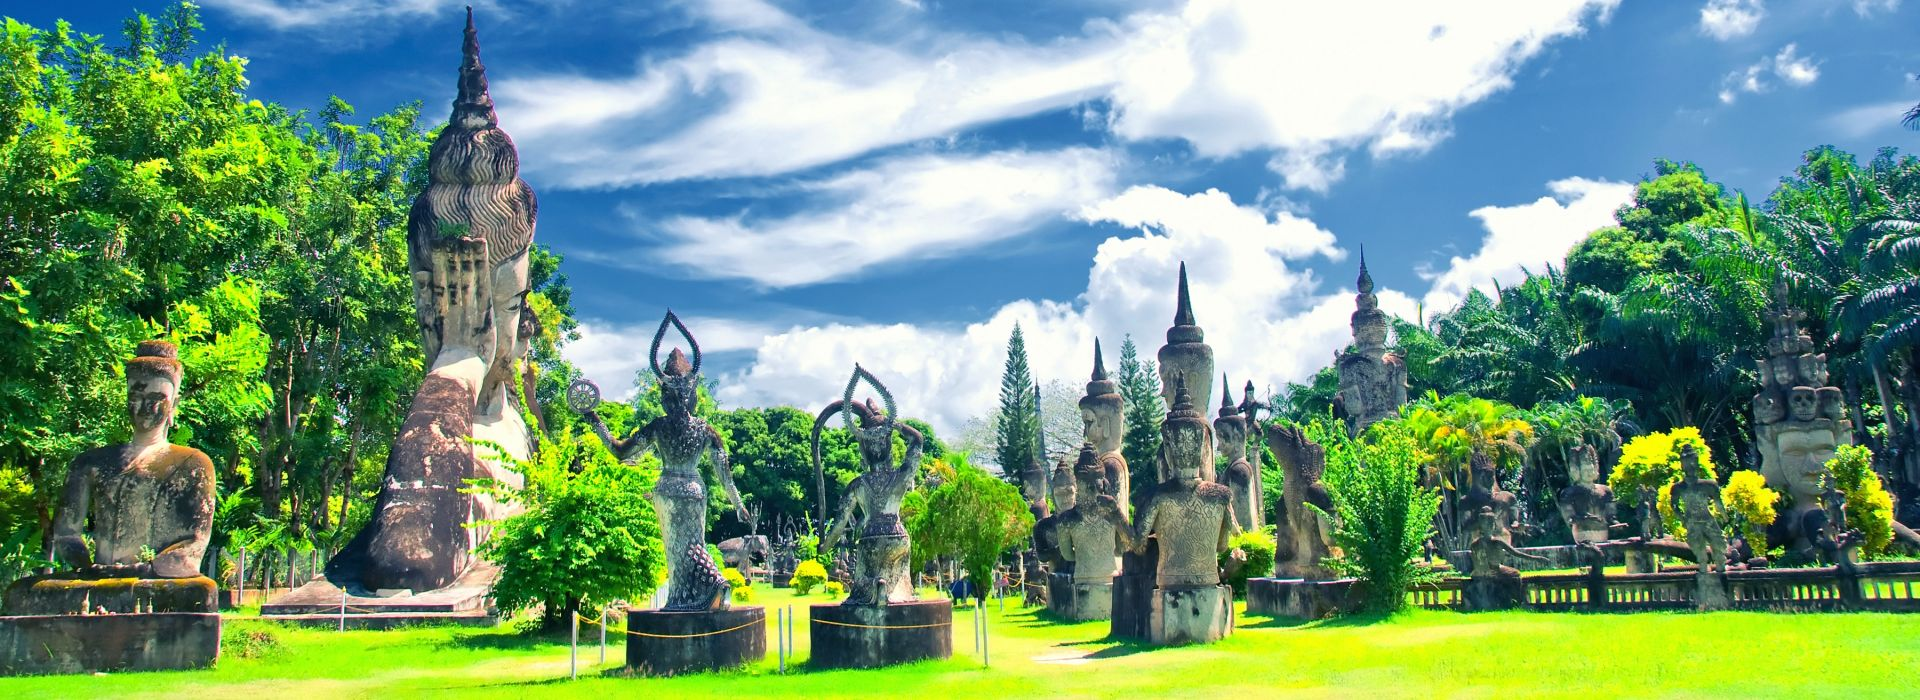 Sightseeing, Attractions, Culture and History Tours in Vientiane